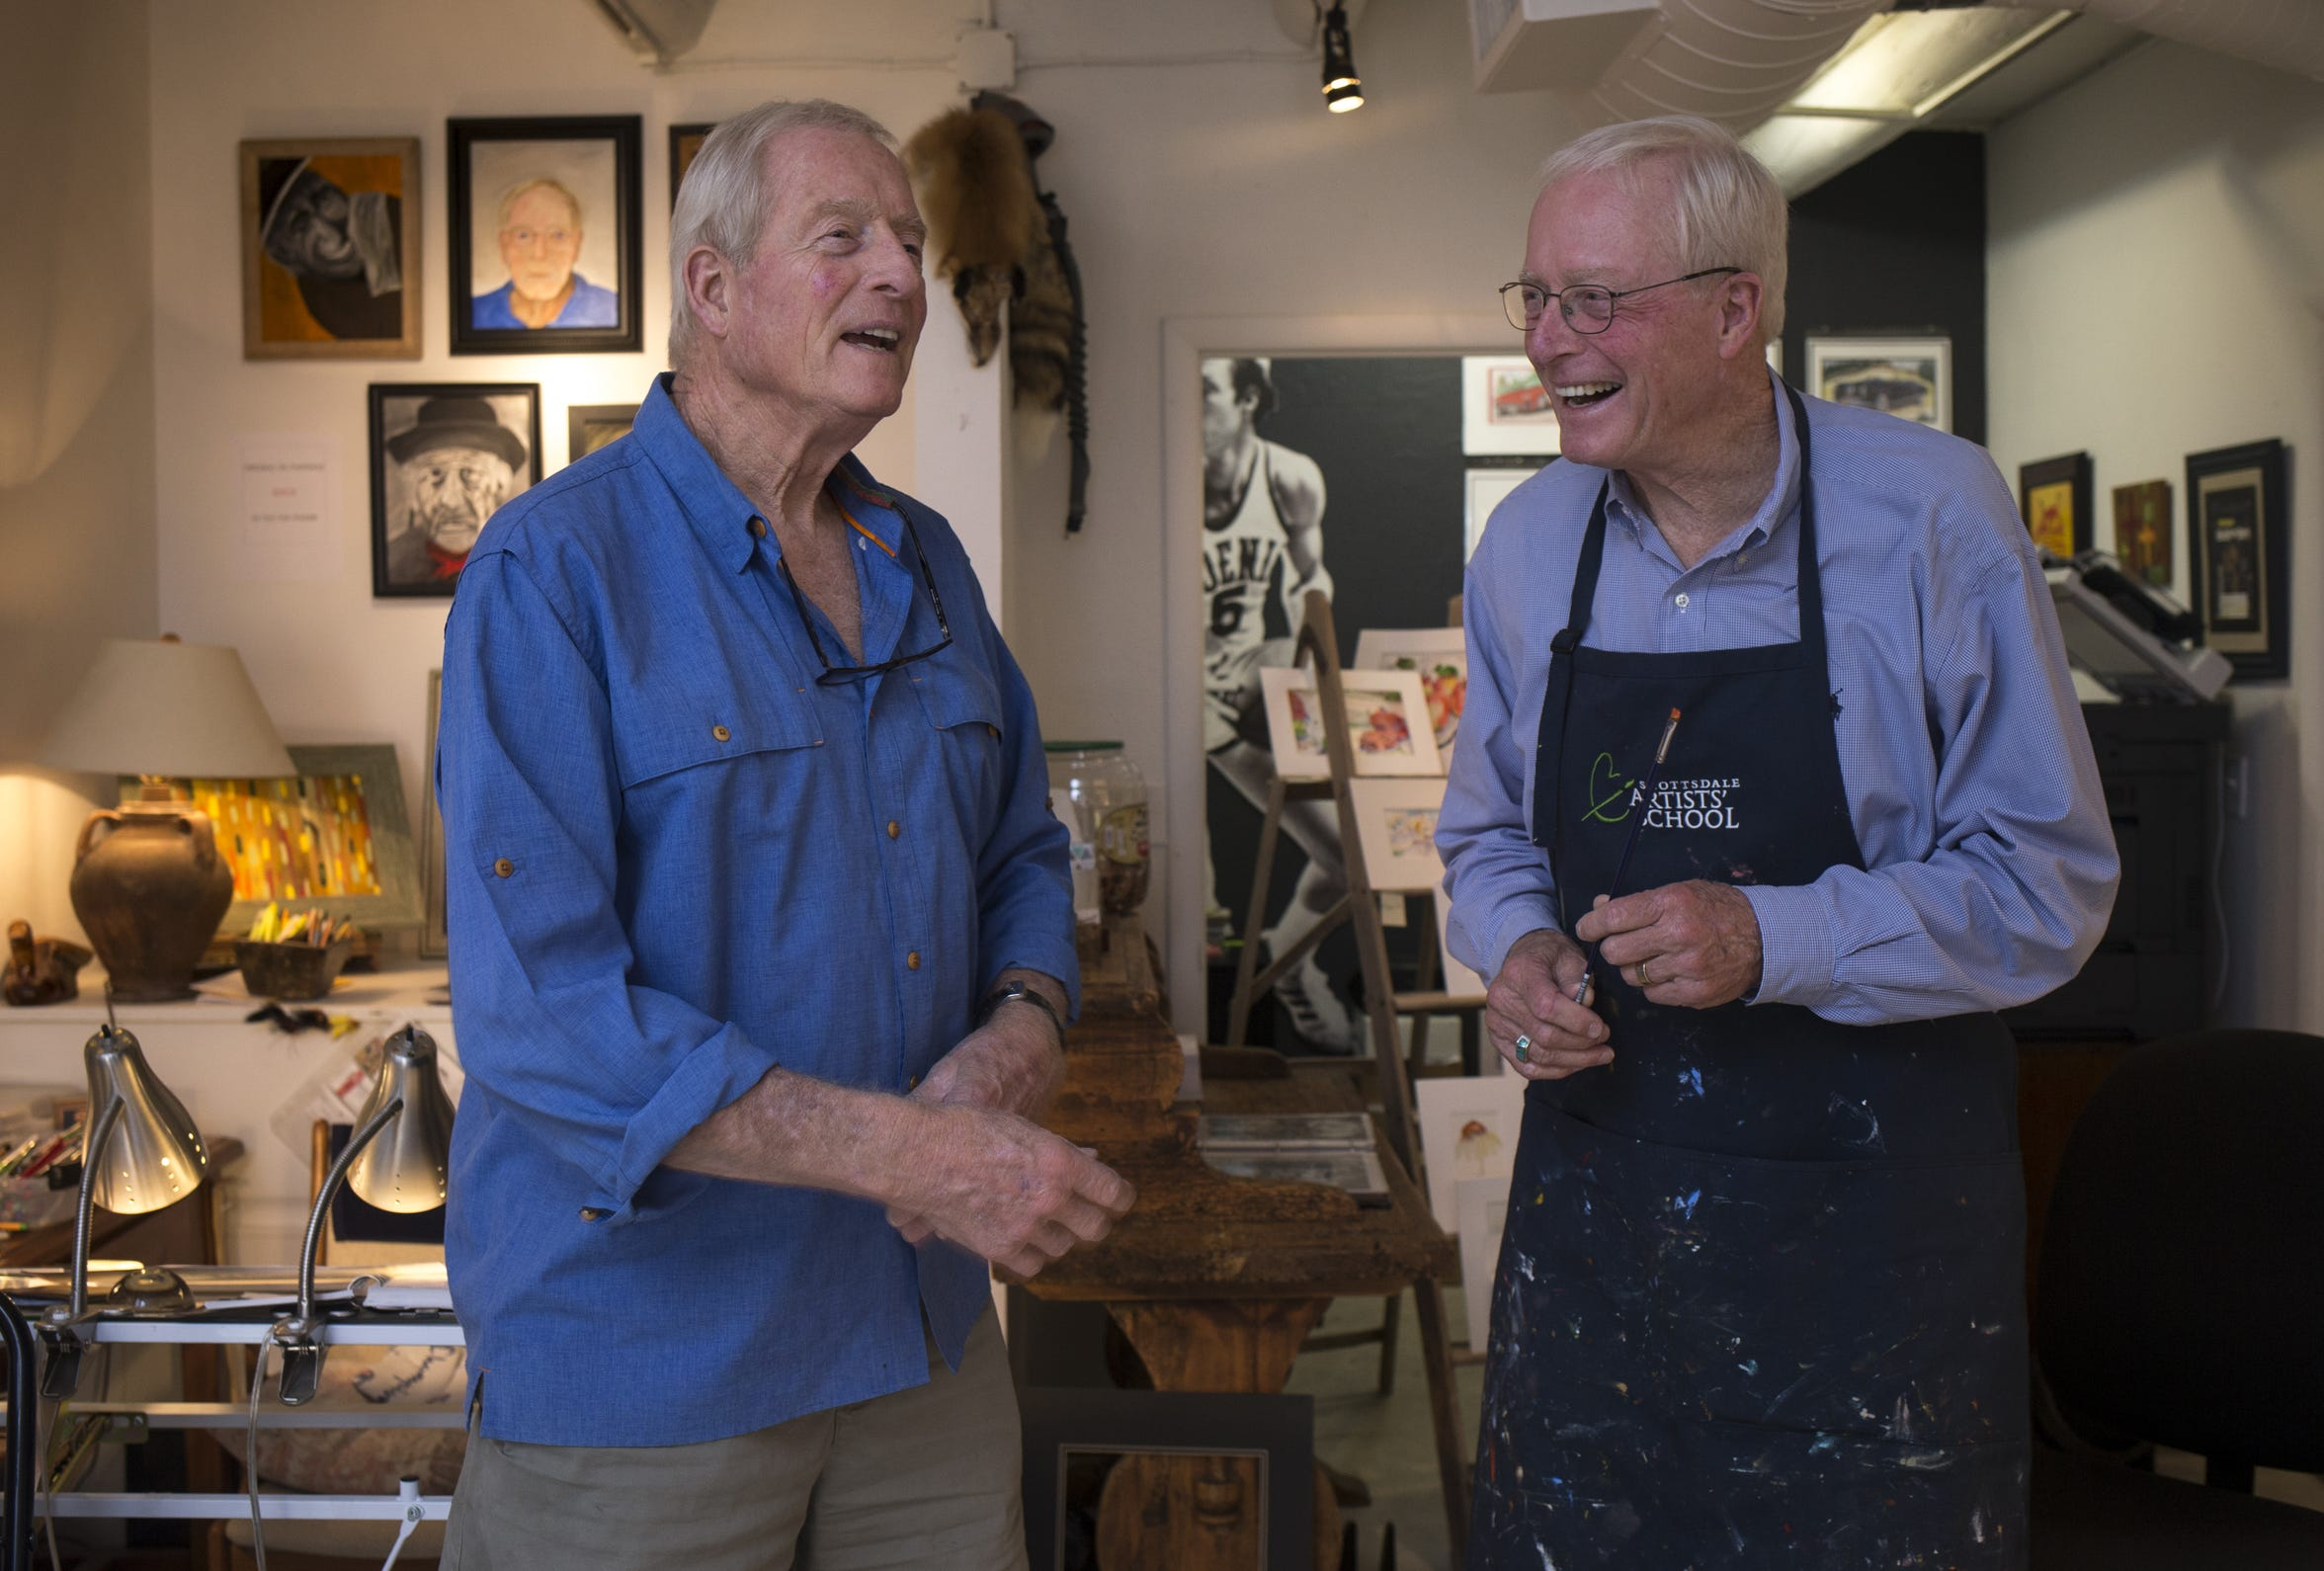 Dick (left) and Tom Van Arsdale (left) work in their Scottsdale art studio in early October.